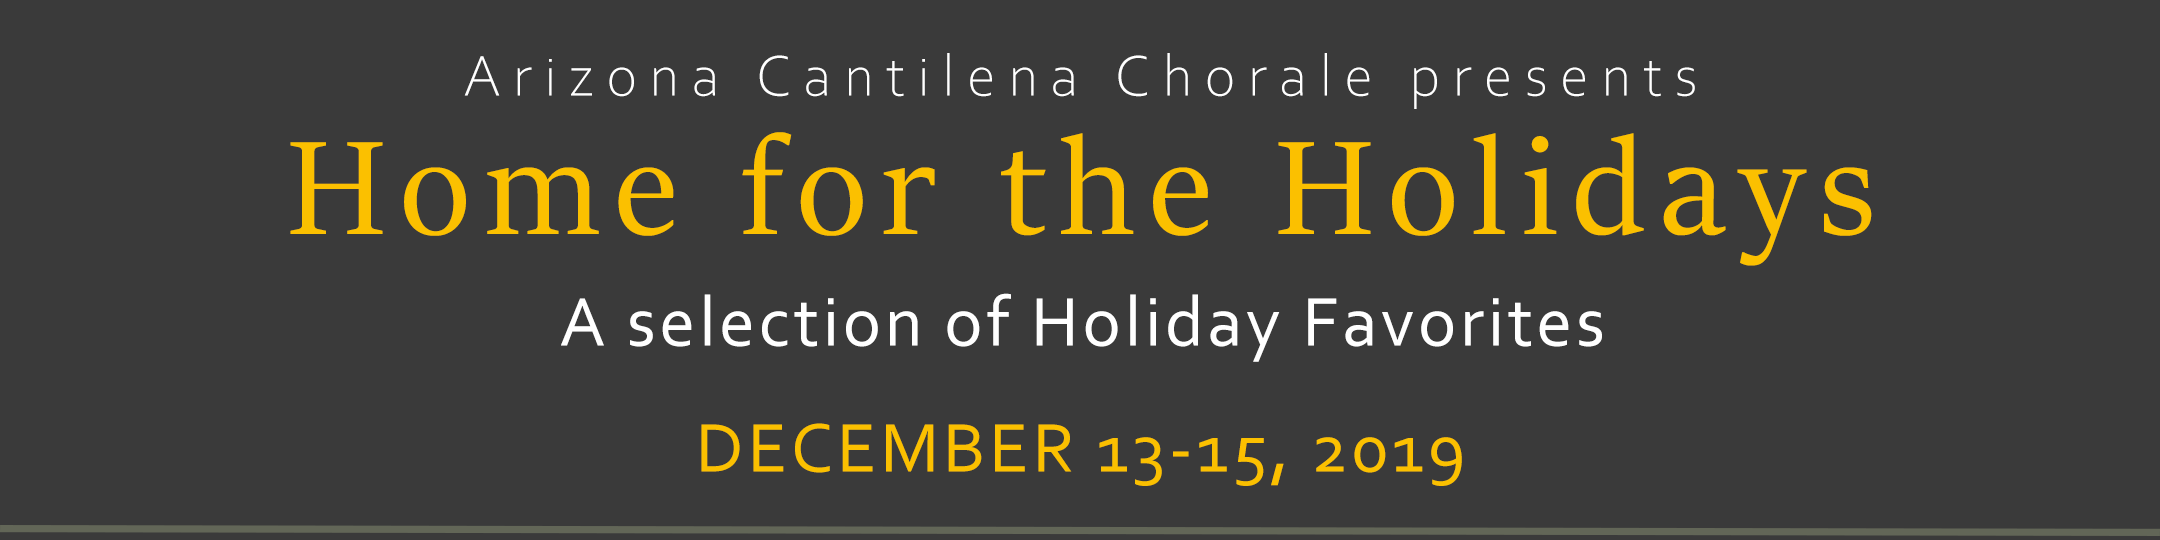 Arizona Cantilena Chorale Presents - Home for the Holidays